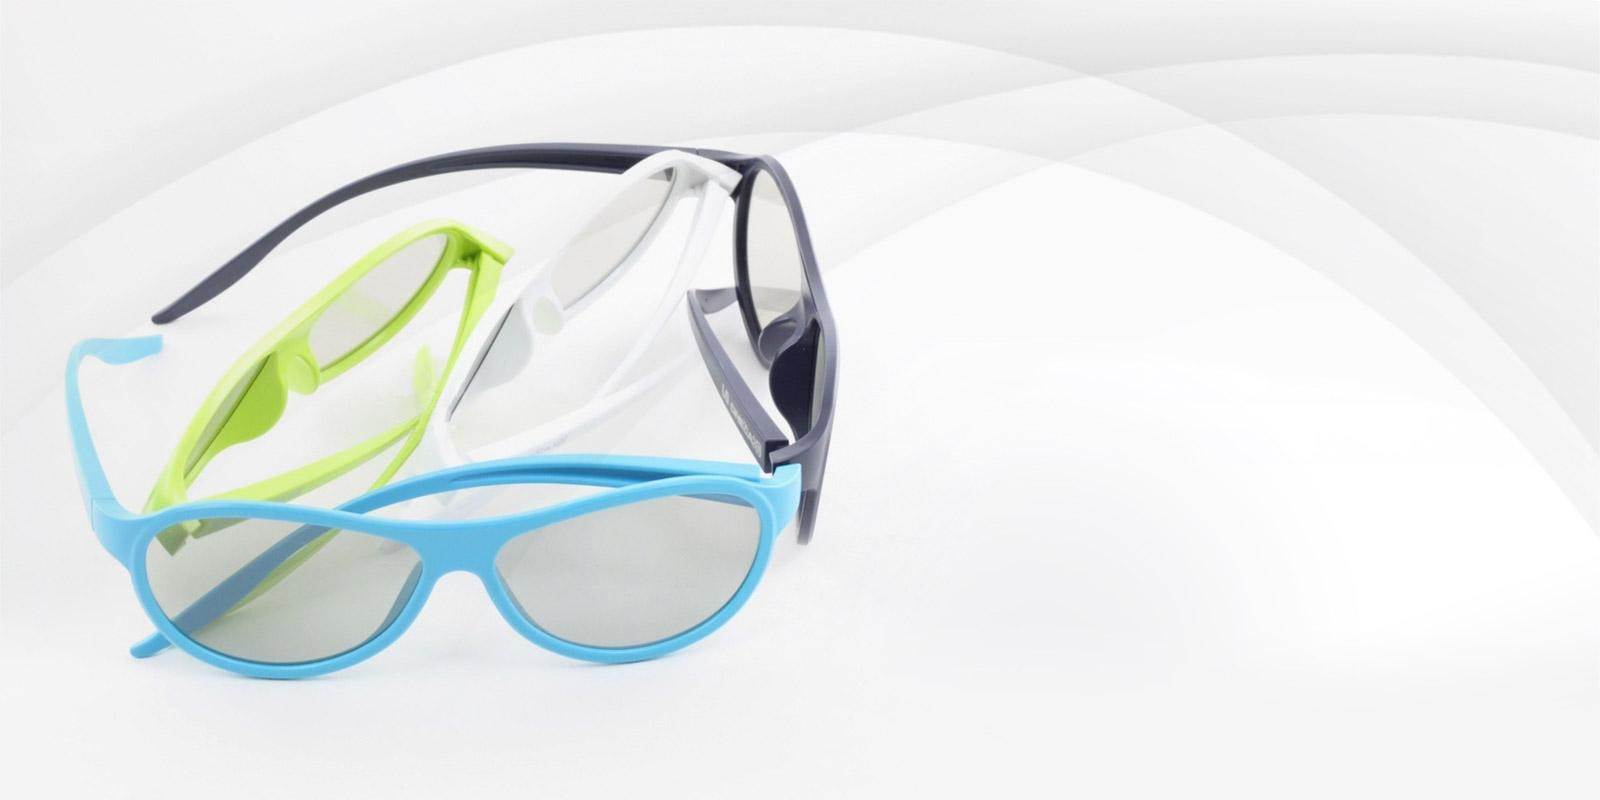 10efa025558 A close-up view of a number of pairs of LG 3D glasses in an